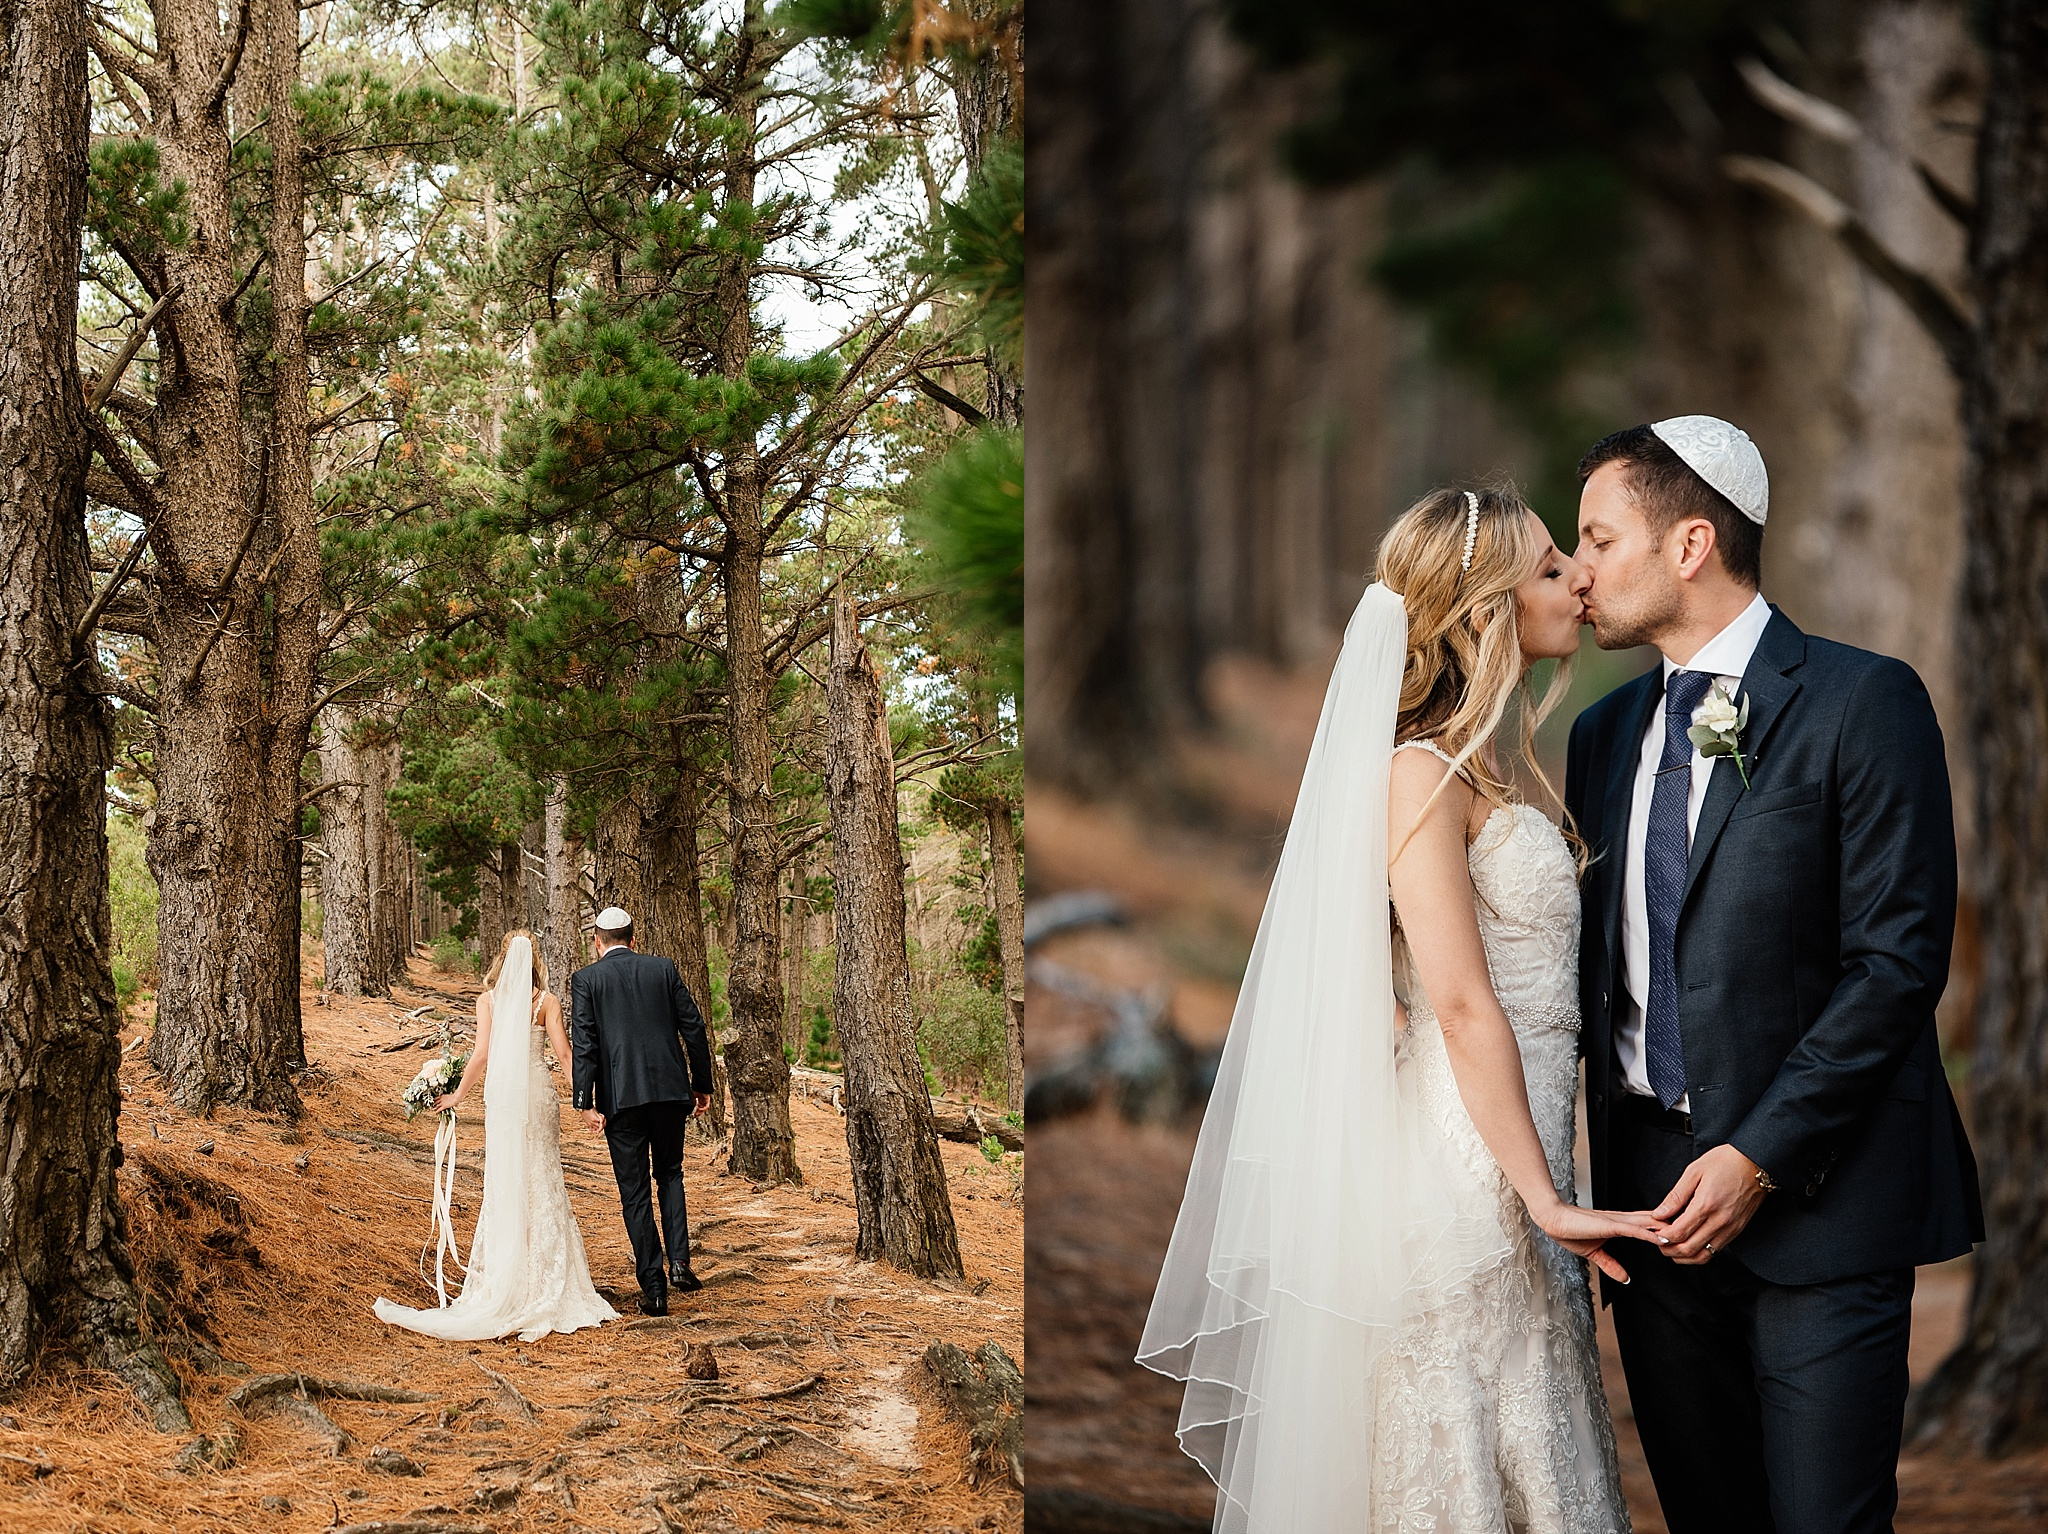 Cape Town Wedding Photographer Darren Bester - SuikerBossie - Stephen and Mikaela_0034.jpg